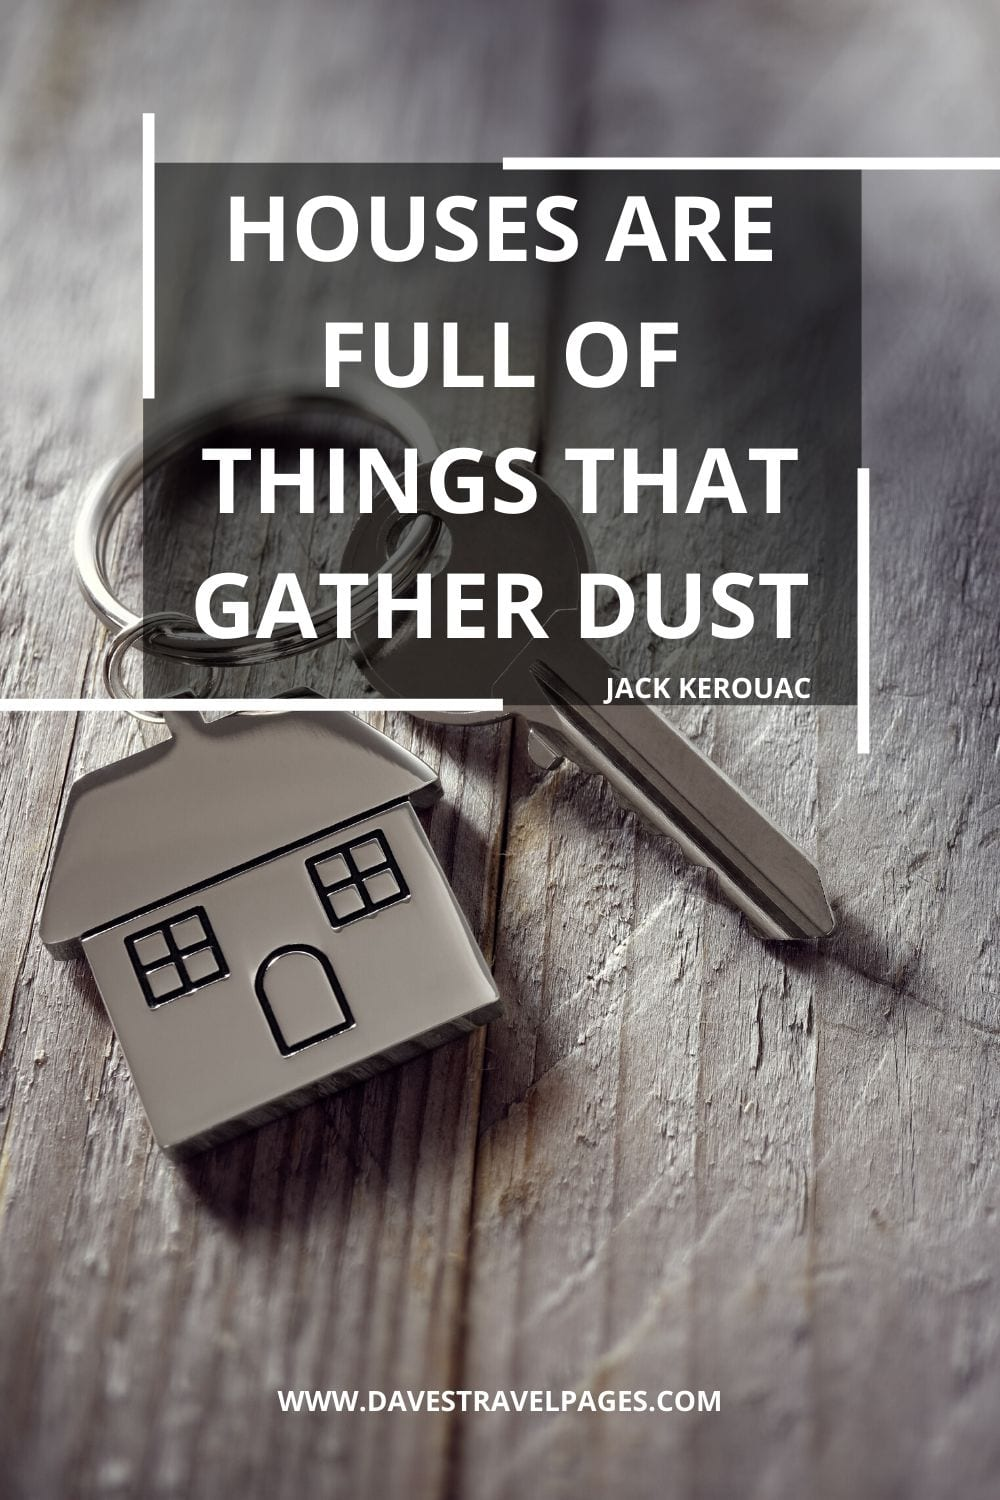 """Houses are full of things that gather dust"" - Quip by Jack Kerouac"